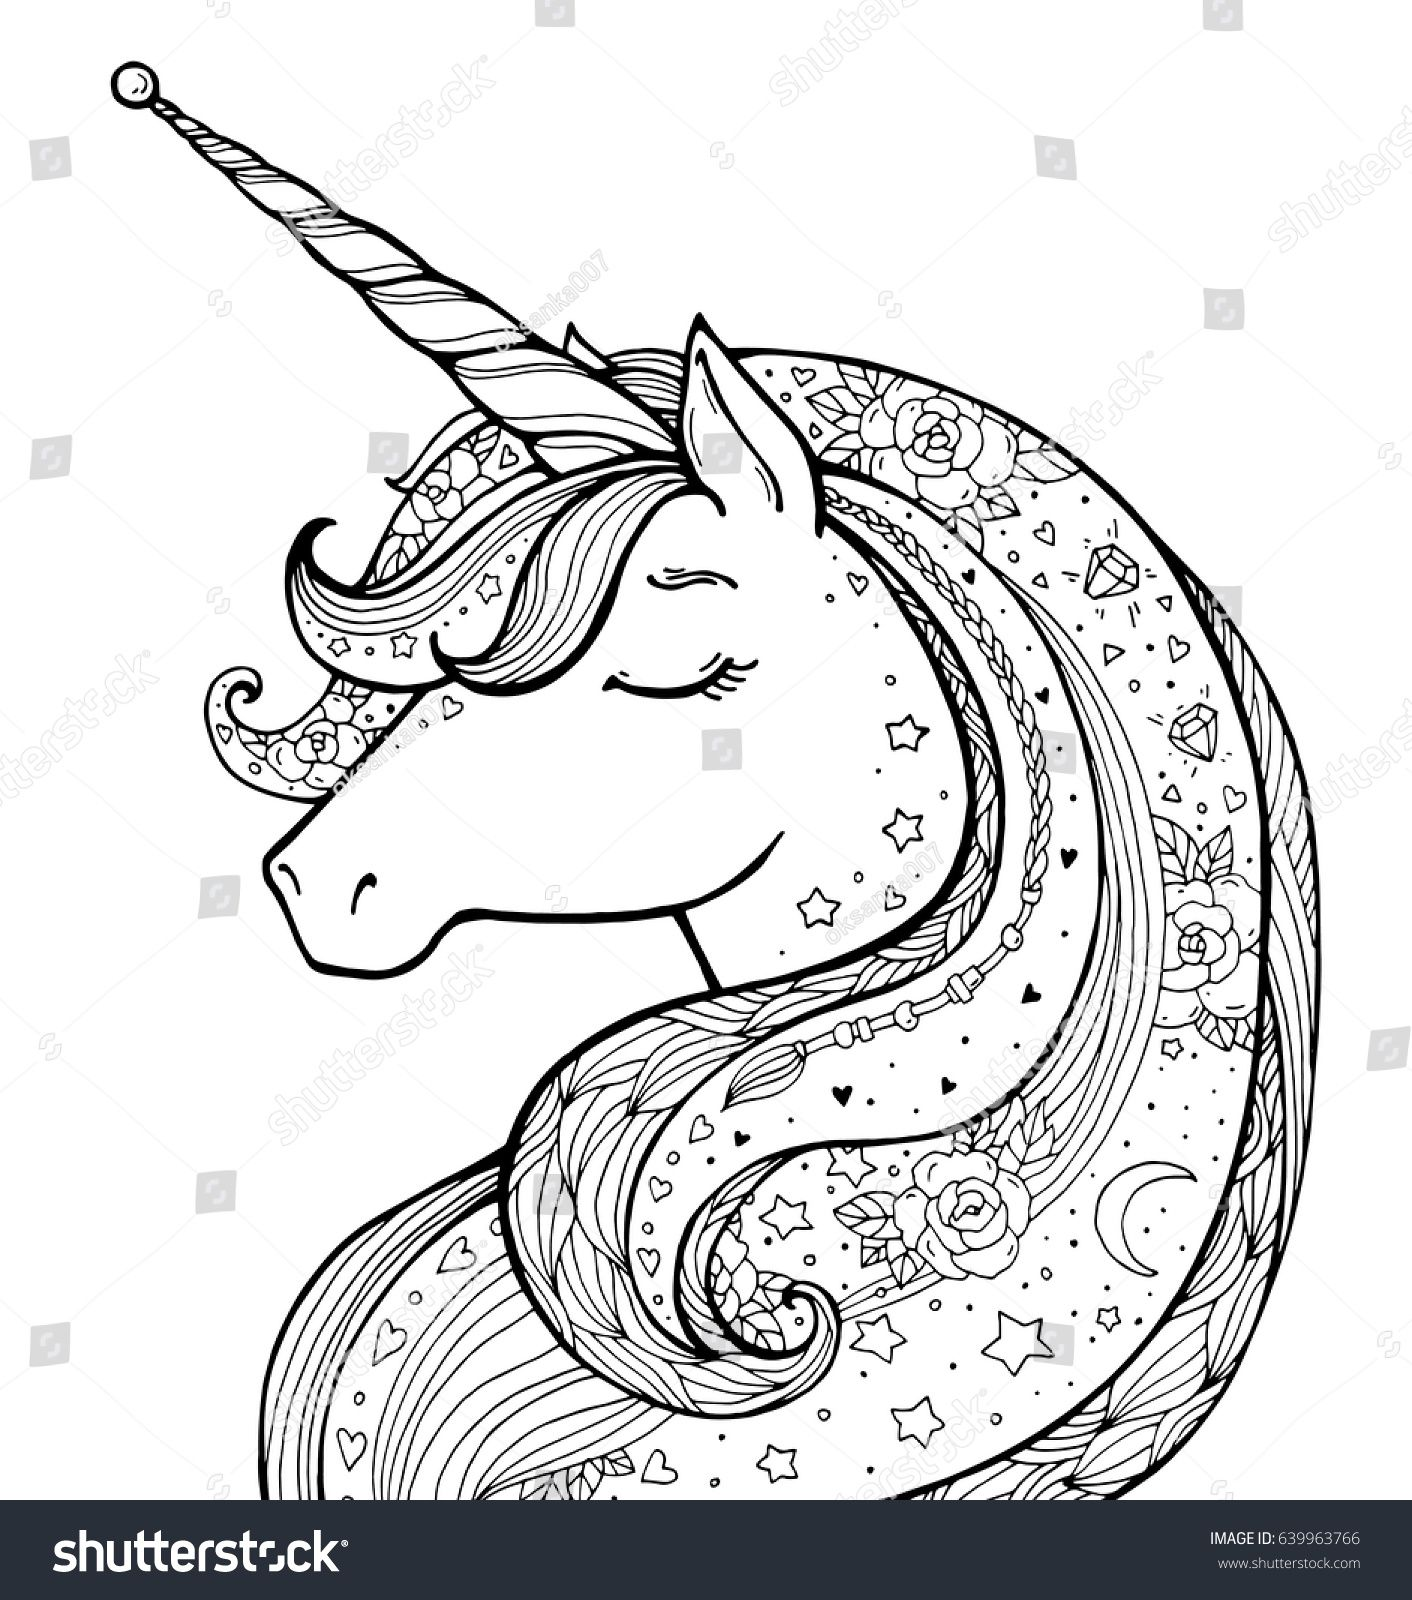 Unicorn Magical Animal Vector Artwork Black And White Coloring